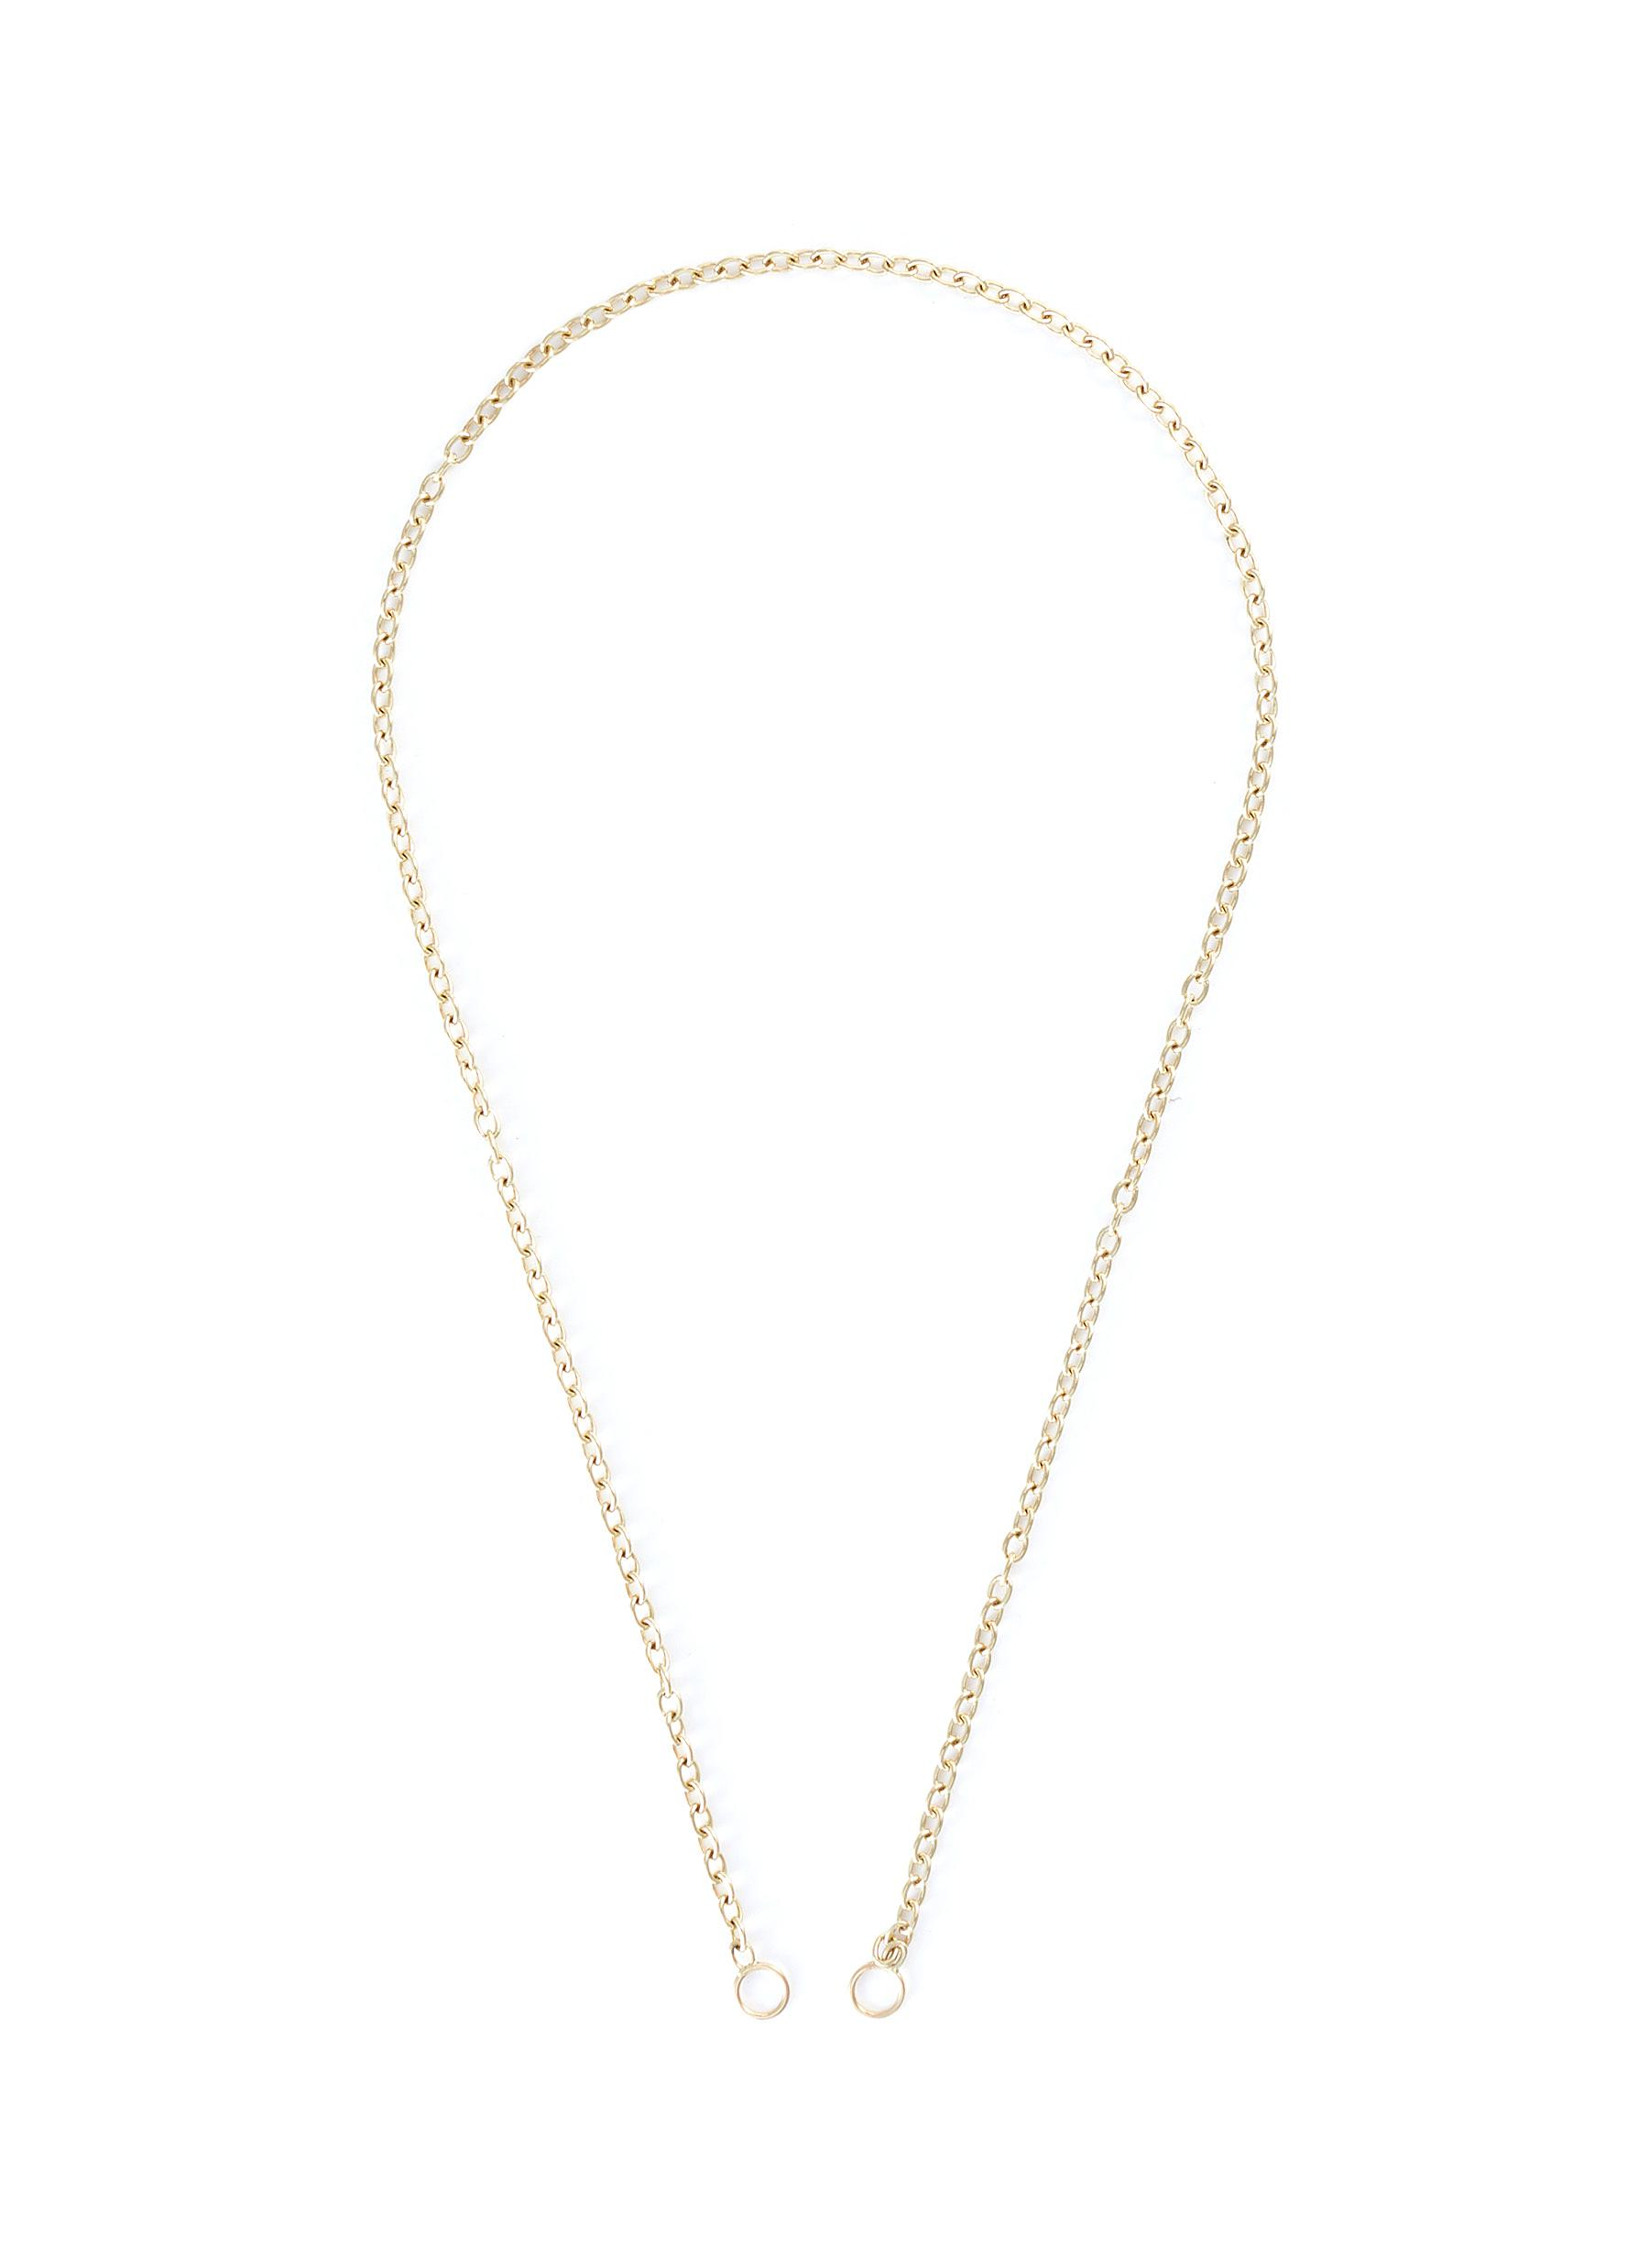 2 loop 14k gold pulley chain